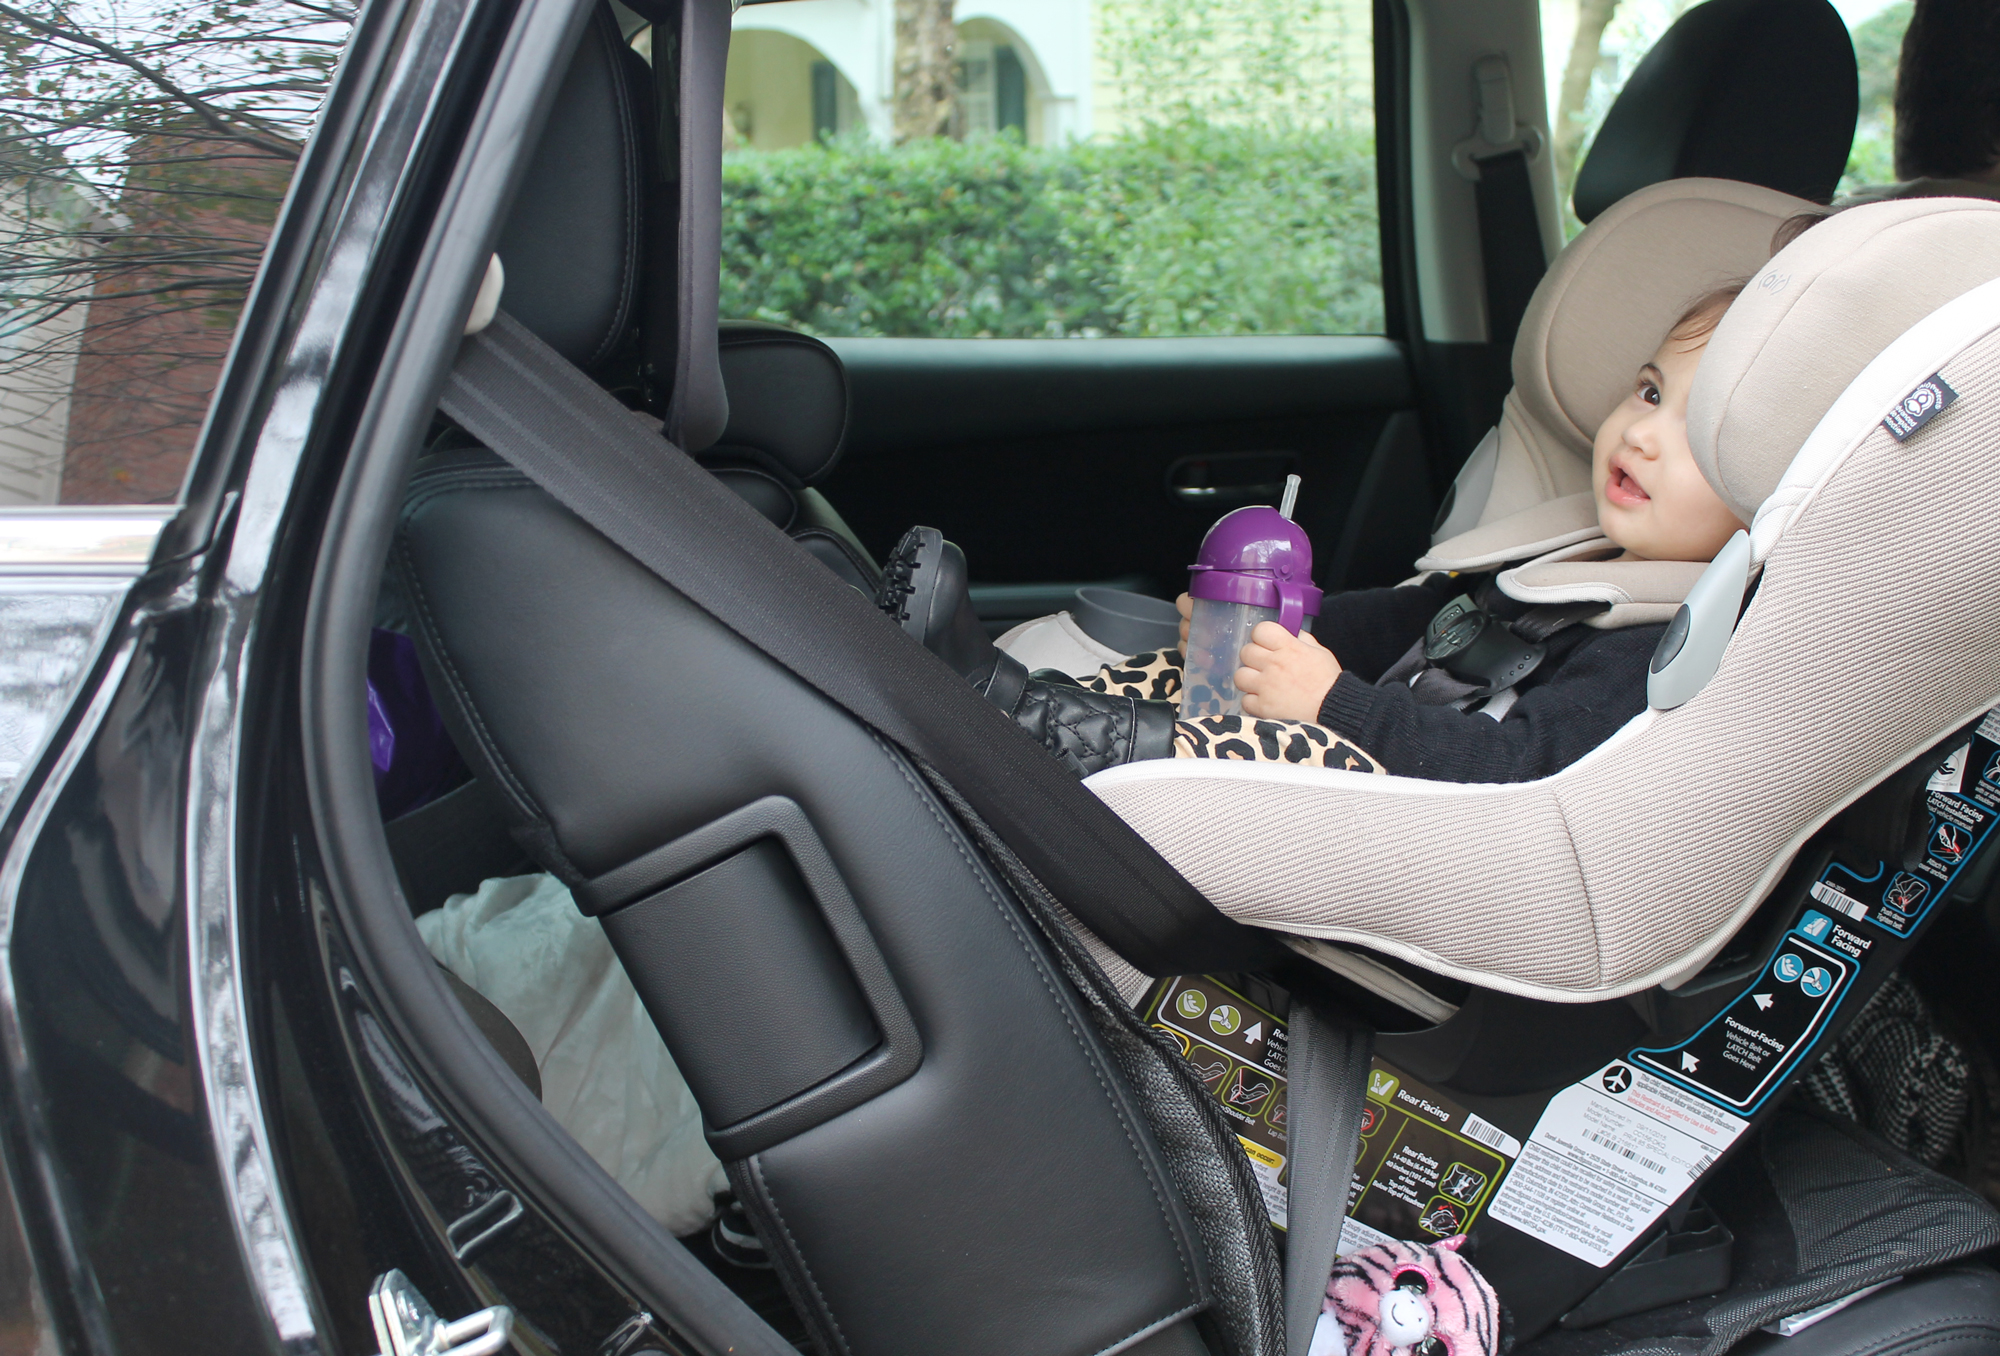 Scarlett-in-her-Maxi-Cosi-Ribble-Knit-Pria-85-car-seat